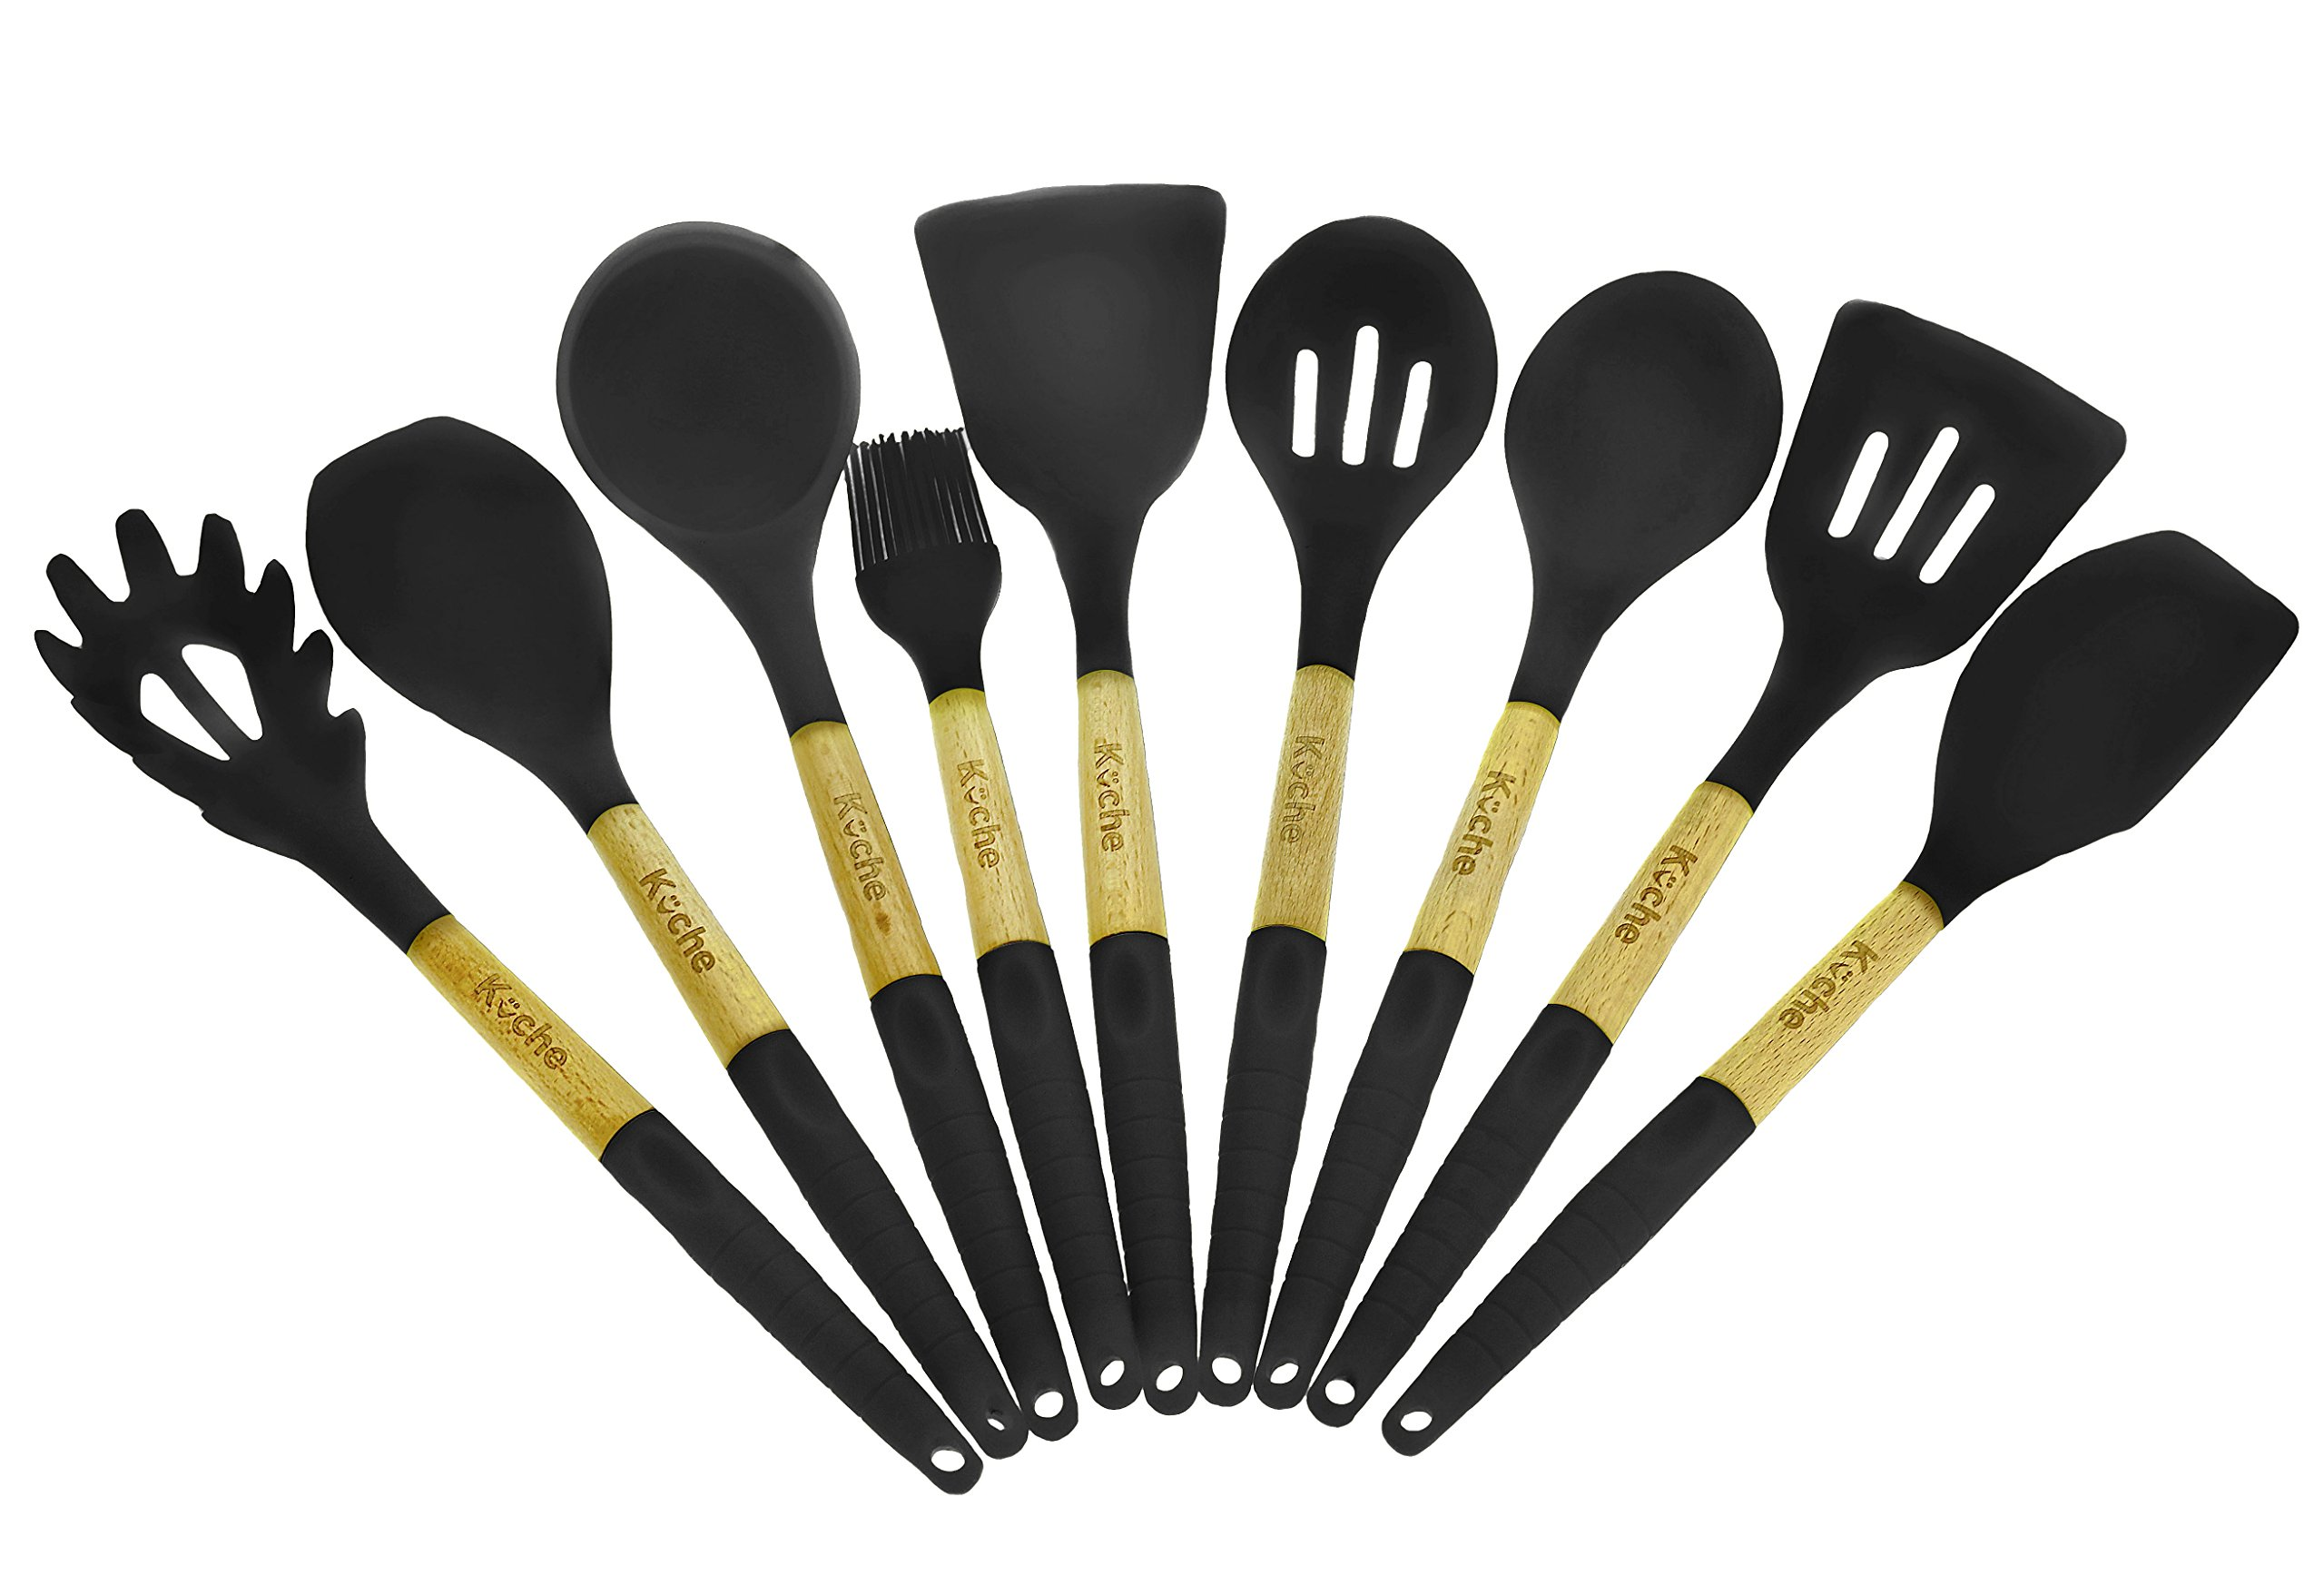 Cooking Utensils – Kitchen Utensil Set Of 9 Pieces Made Of Silicone & Beech Wood – For Professionals, Parents, Cooks – Kitchen Cooking Tool Set, High Heat Resistant By Kuche (Cool Gray)